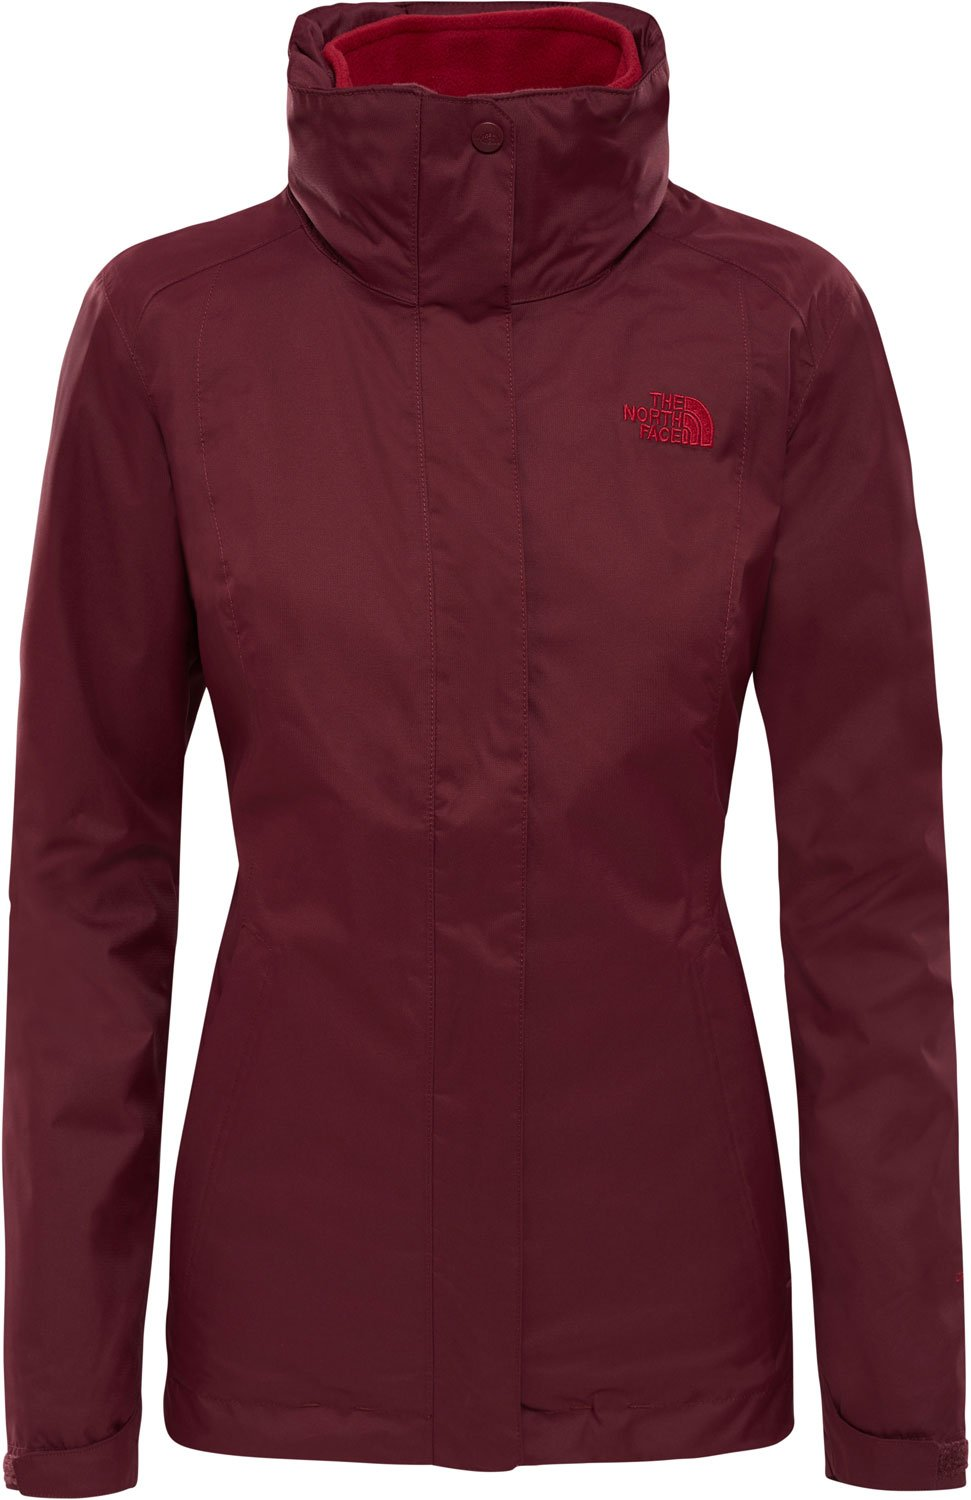 dd15924cb THE NORTH FACE Women's Evolve Ii Triclimate Jacket: Amazon.co.uk ...